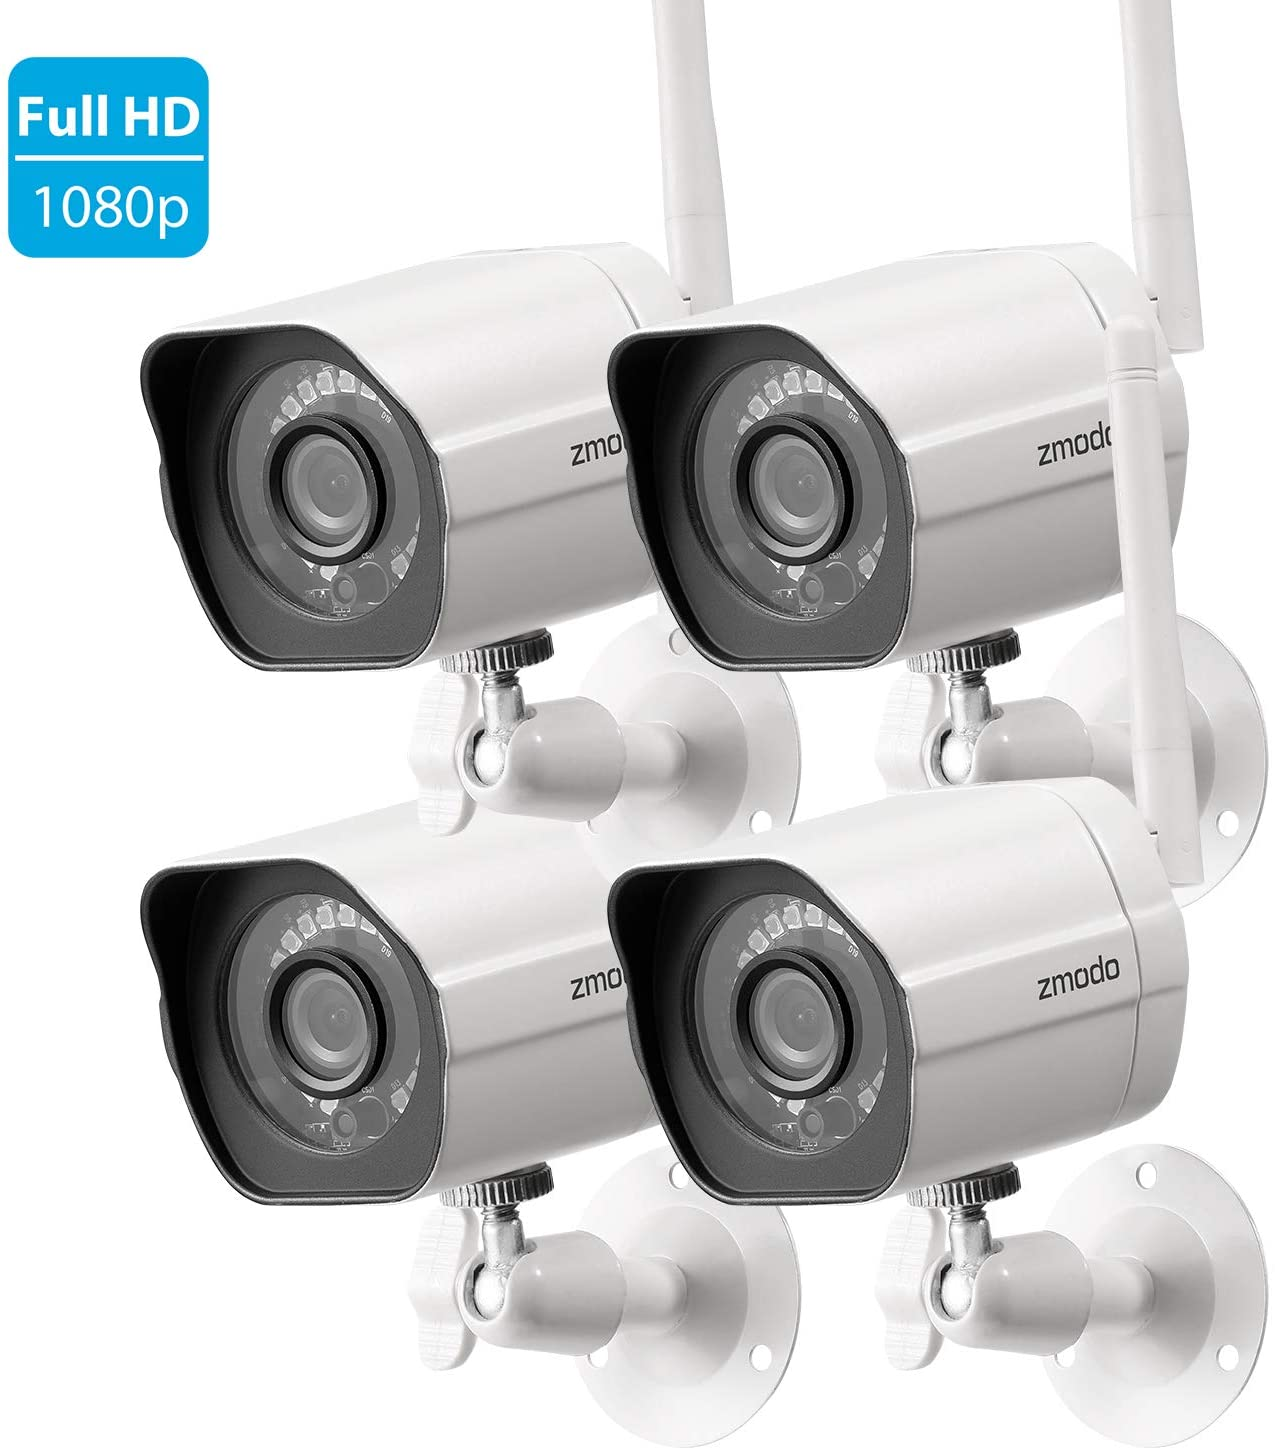 1080P Hd Cloud Cam Kits 6 Month Premium Cloud Recording Wireless Security Camera